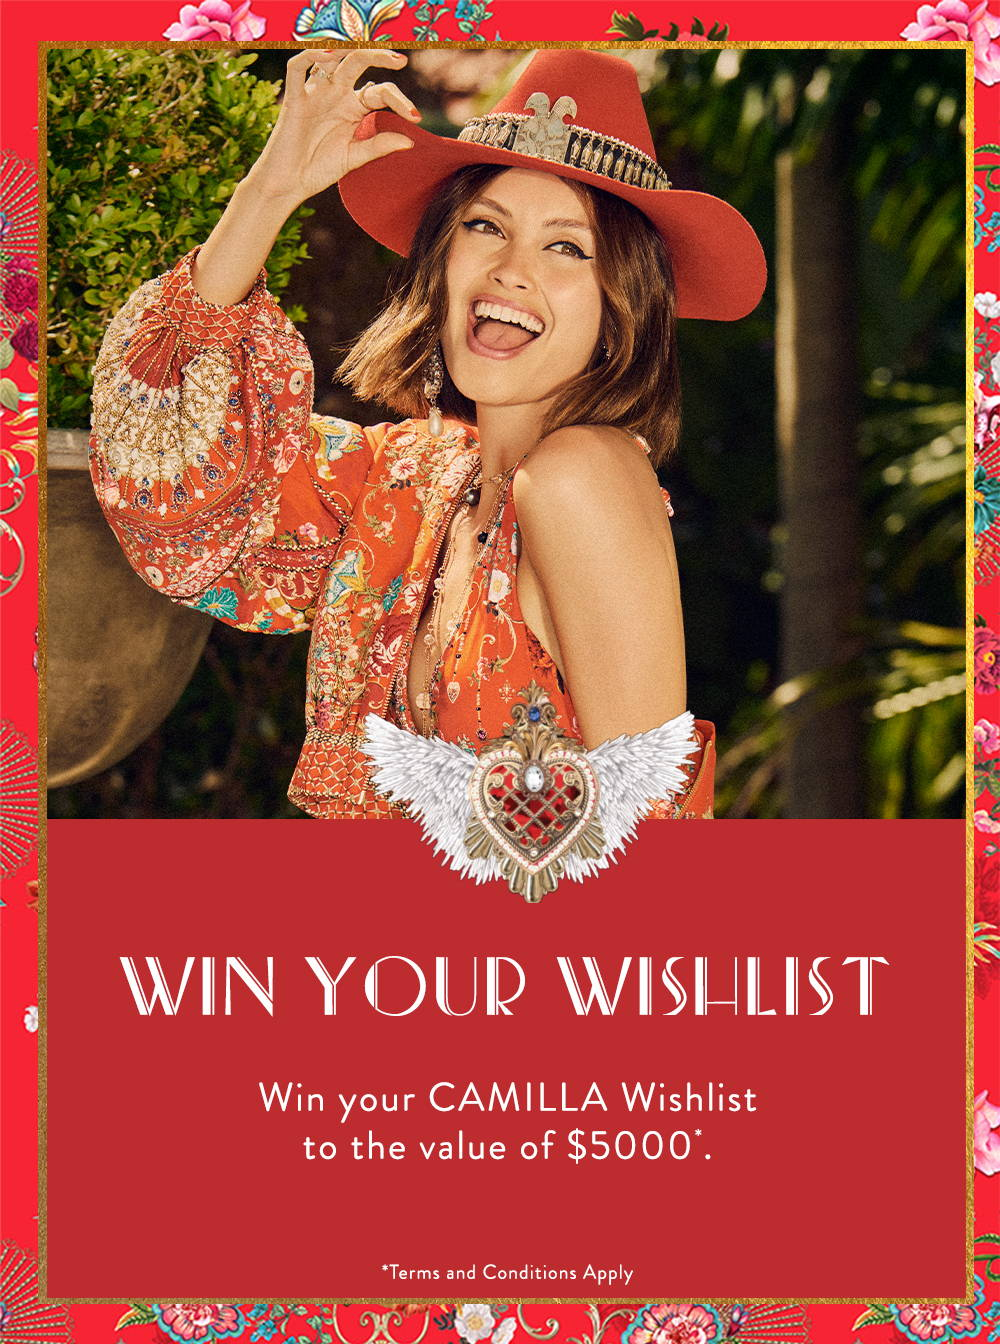 Win Your Wishlist to the value of $5000